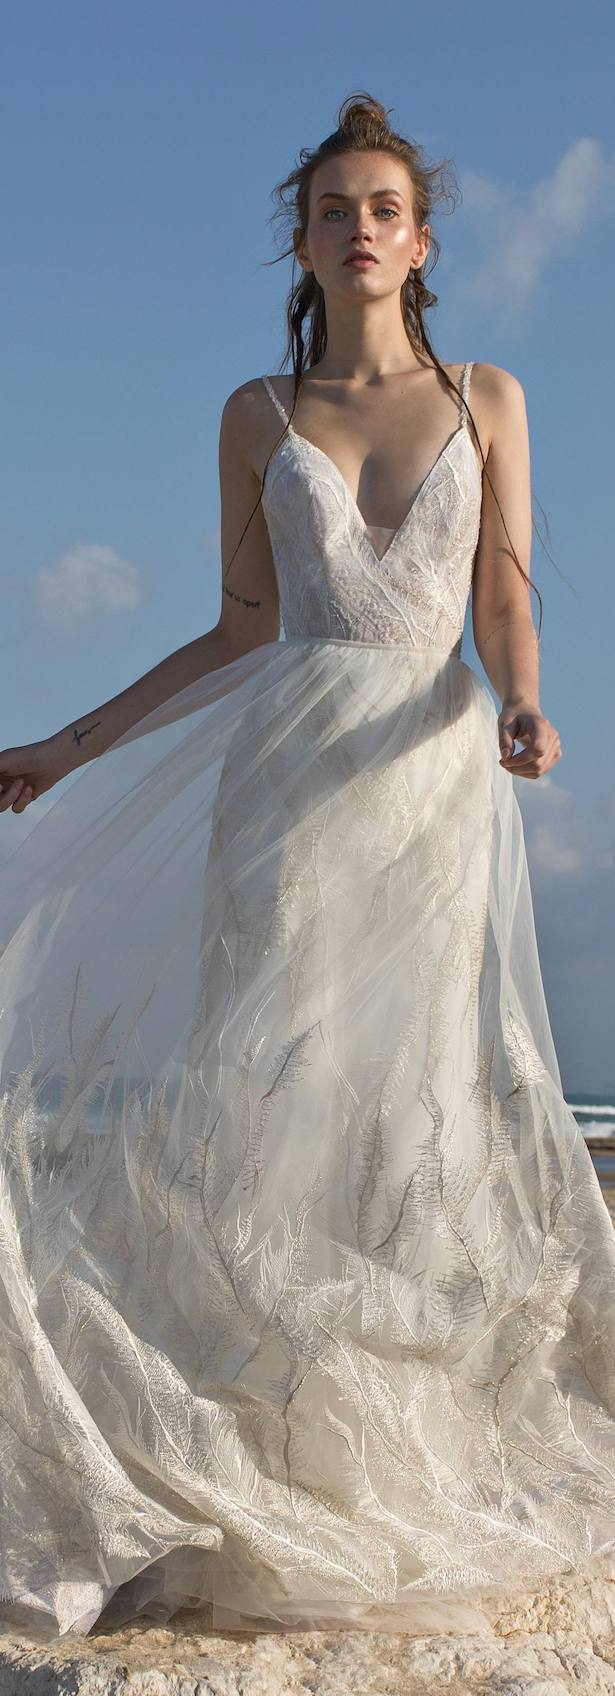 best bridal gowns out there by visiting my wedding dresses gallery